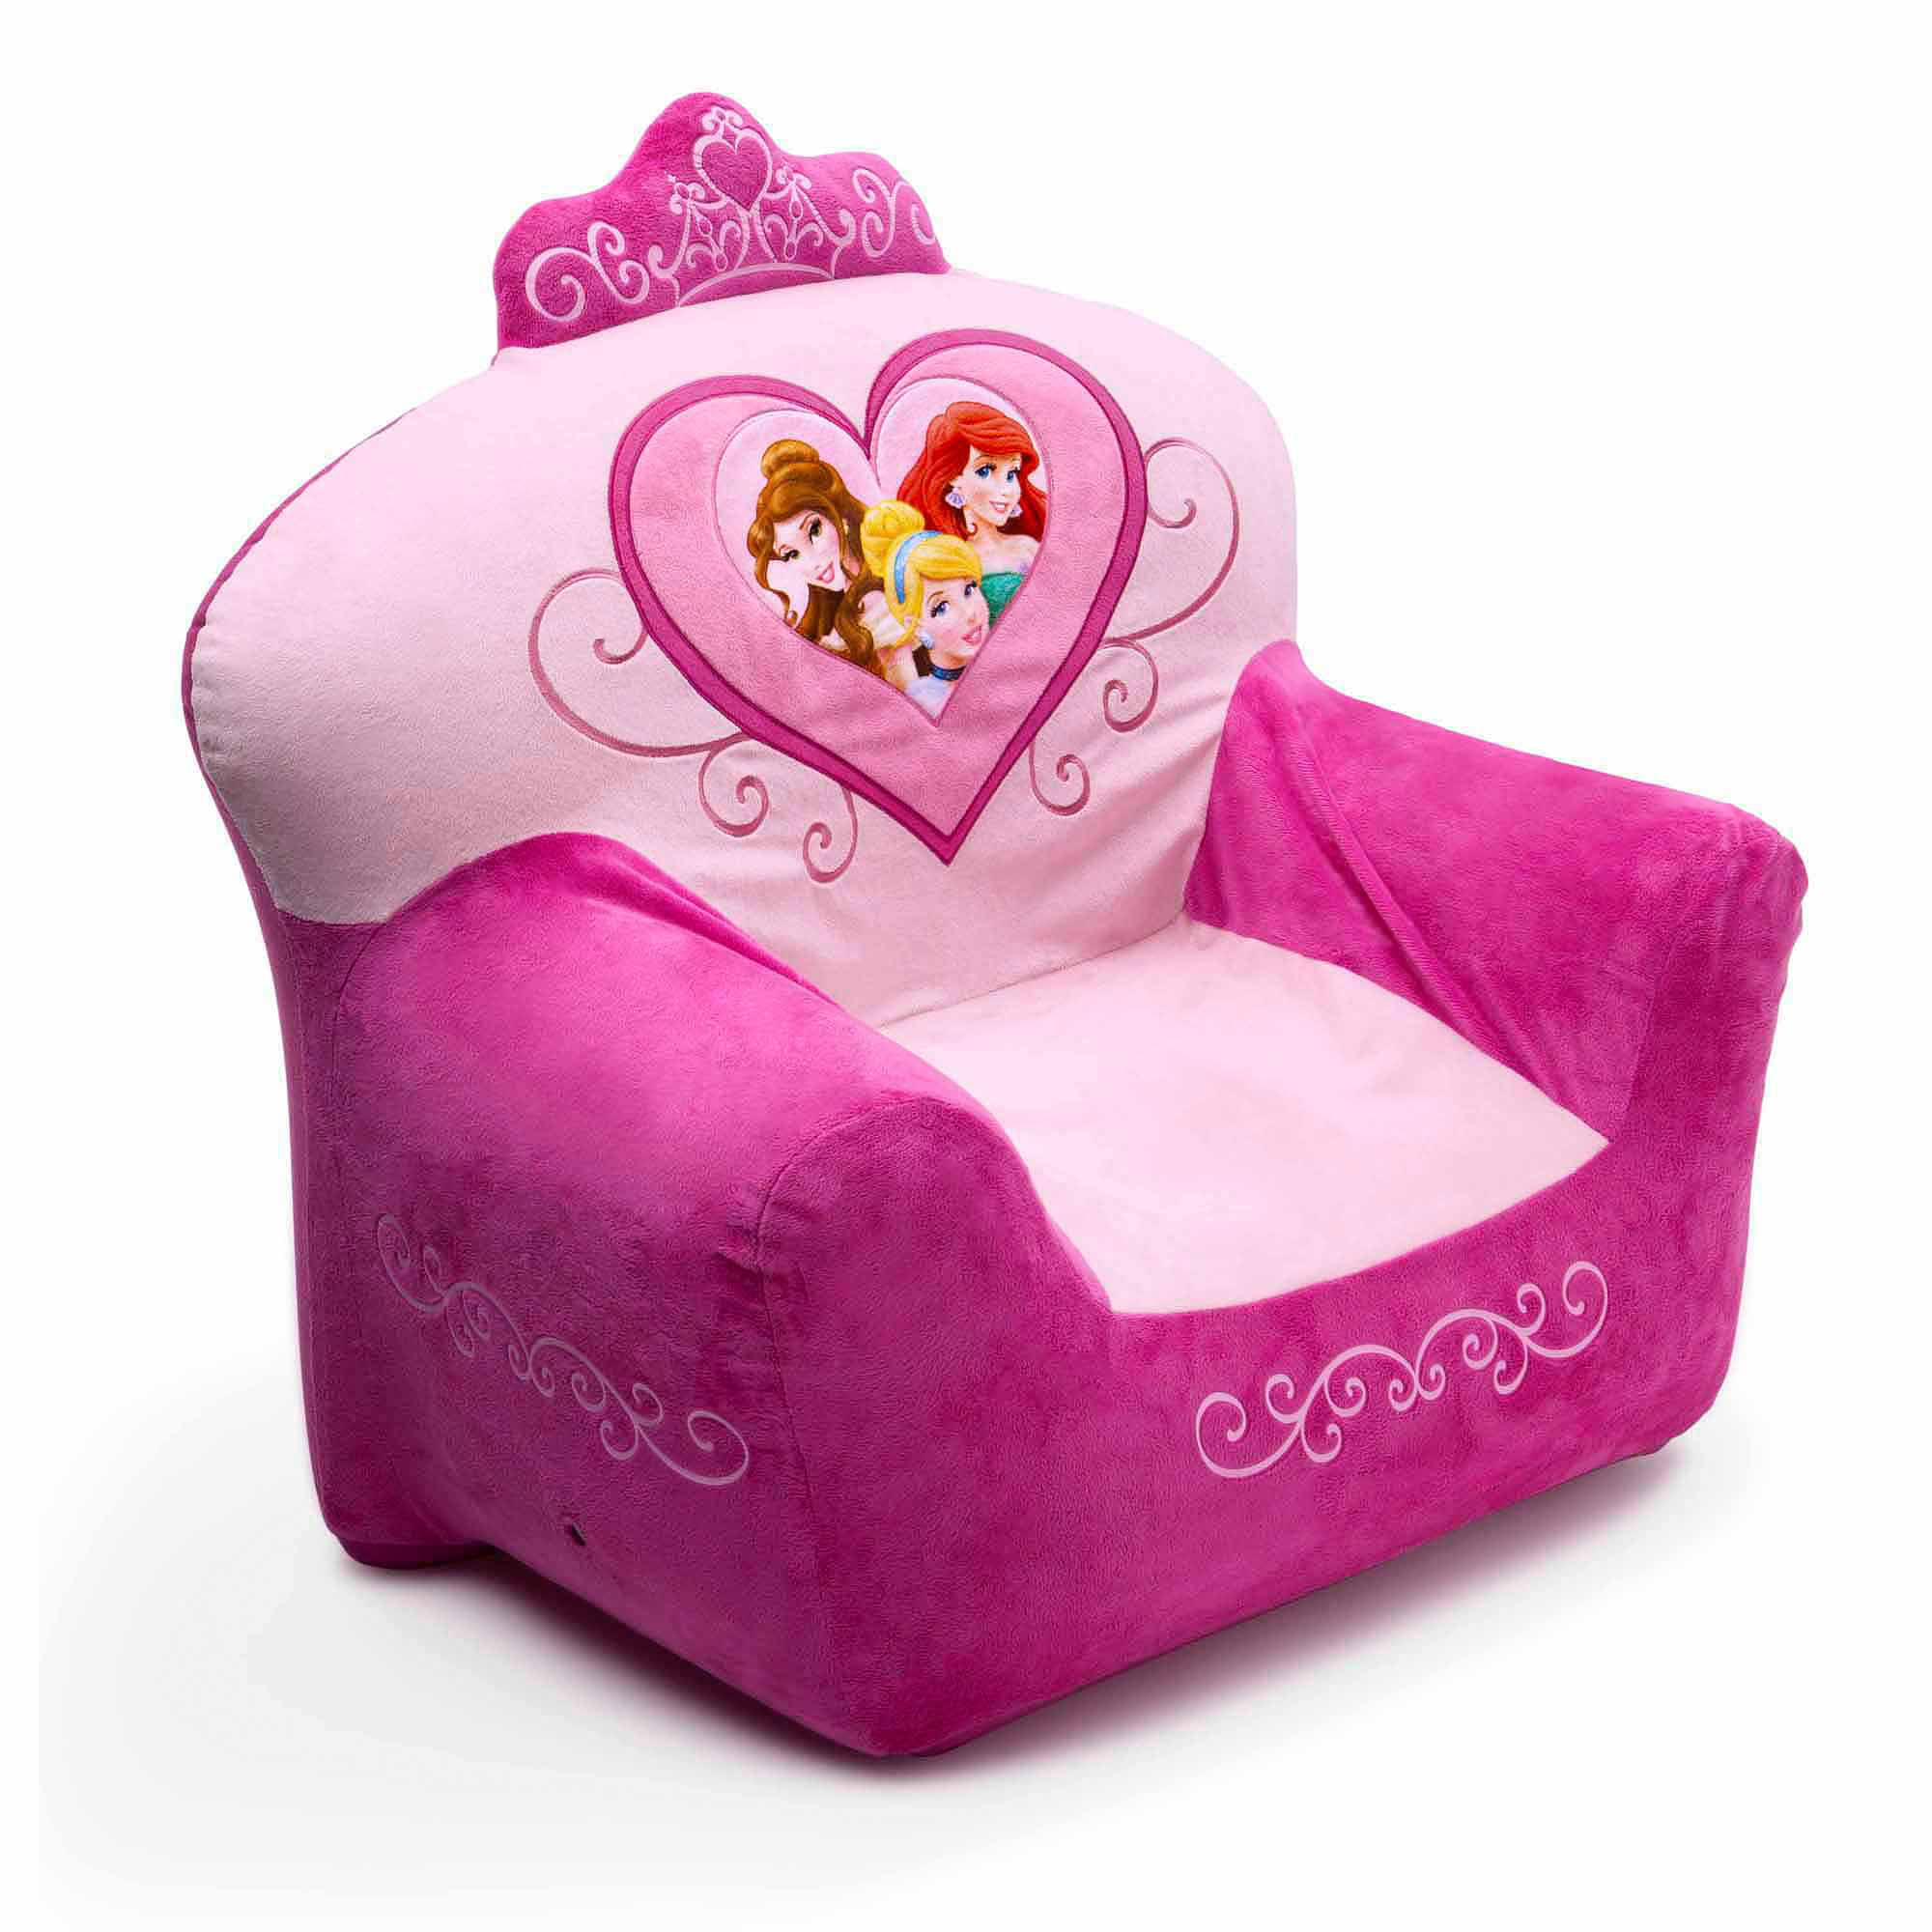 Princess Chairs For Toddlers Disney Doc Mcstuffins Toddler Bean Bag Sofa Chair Multi